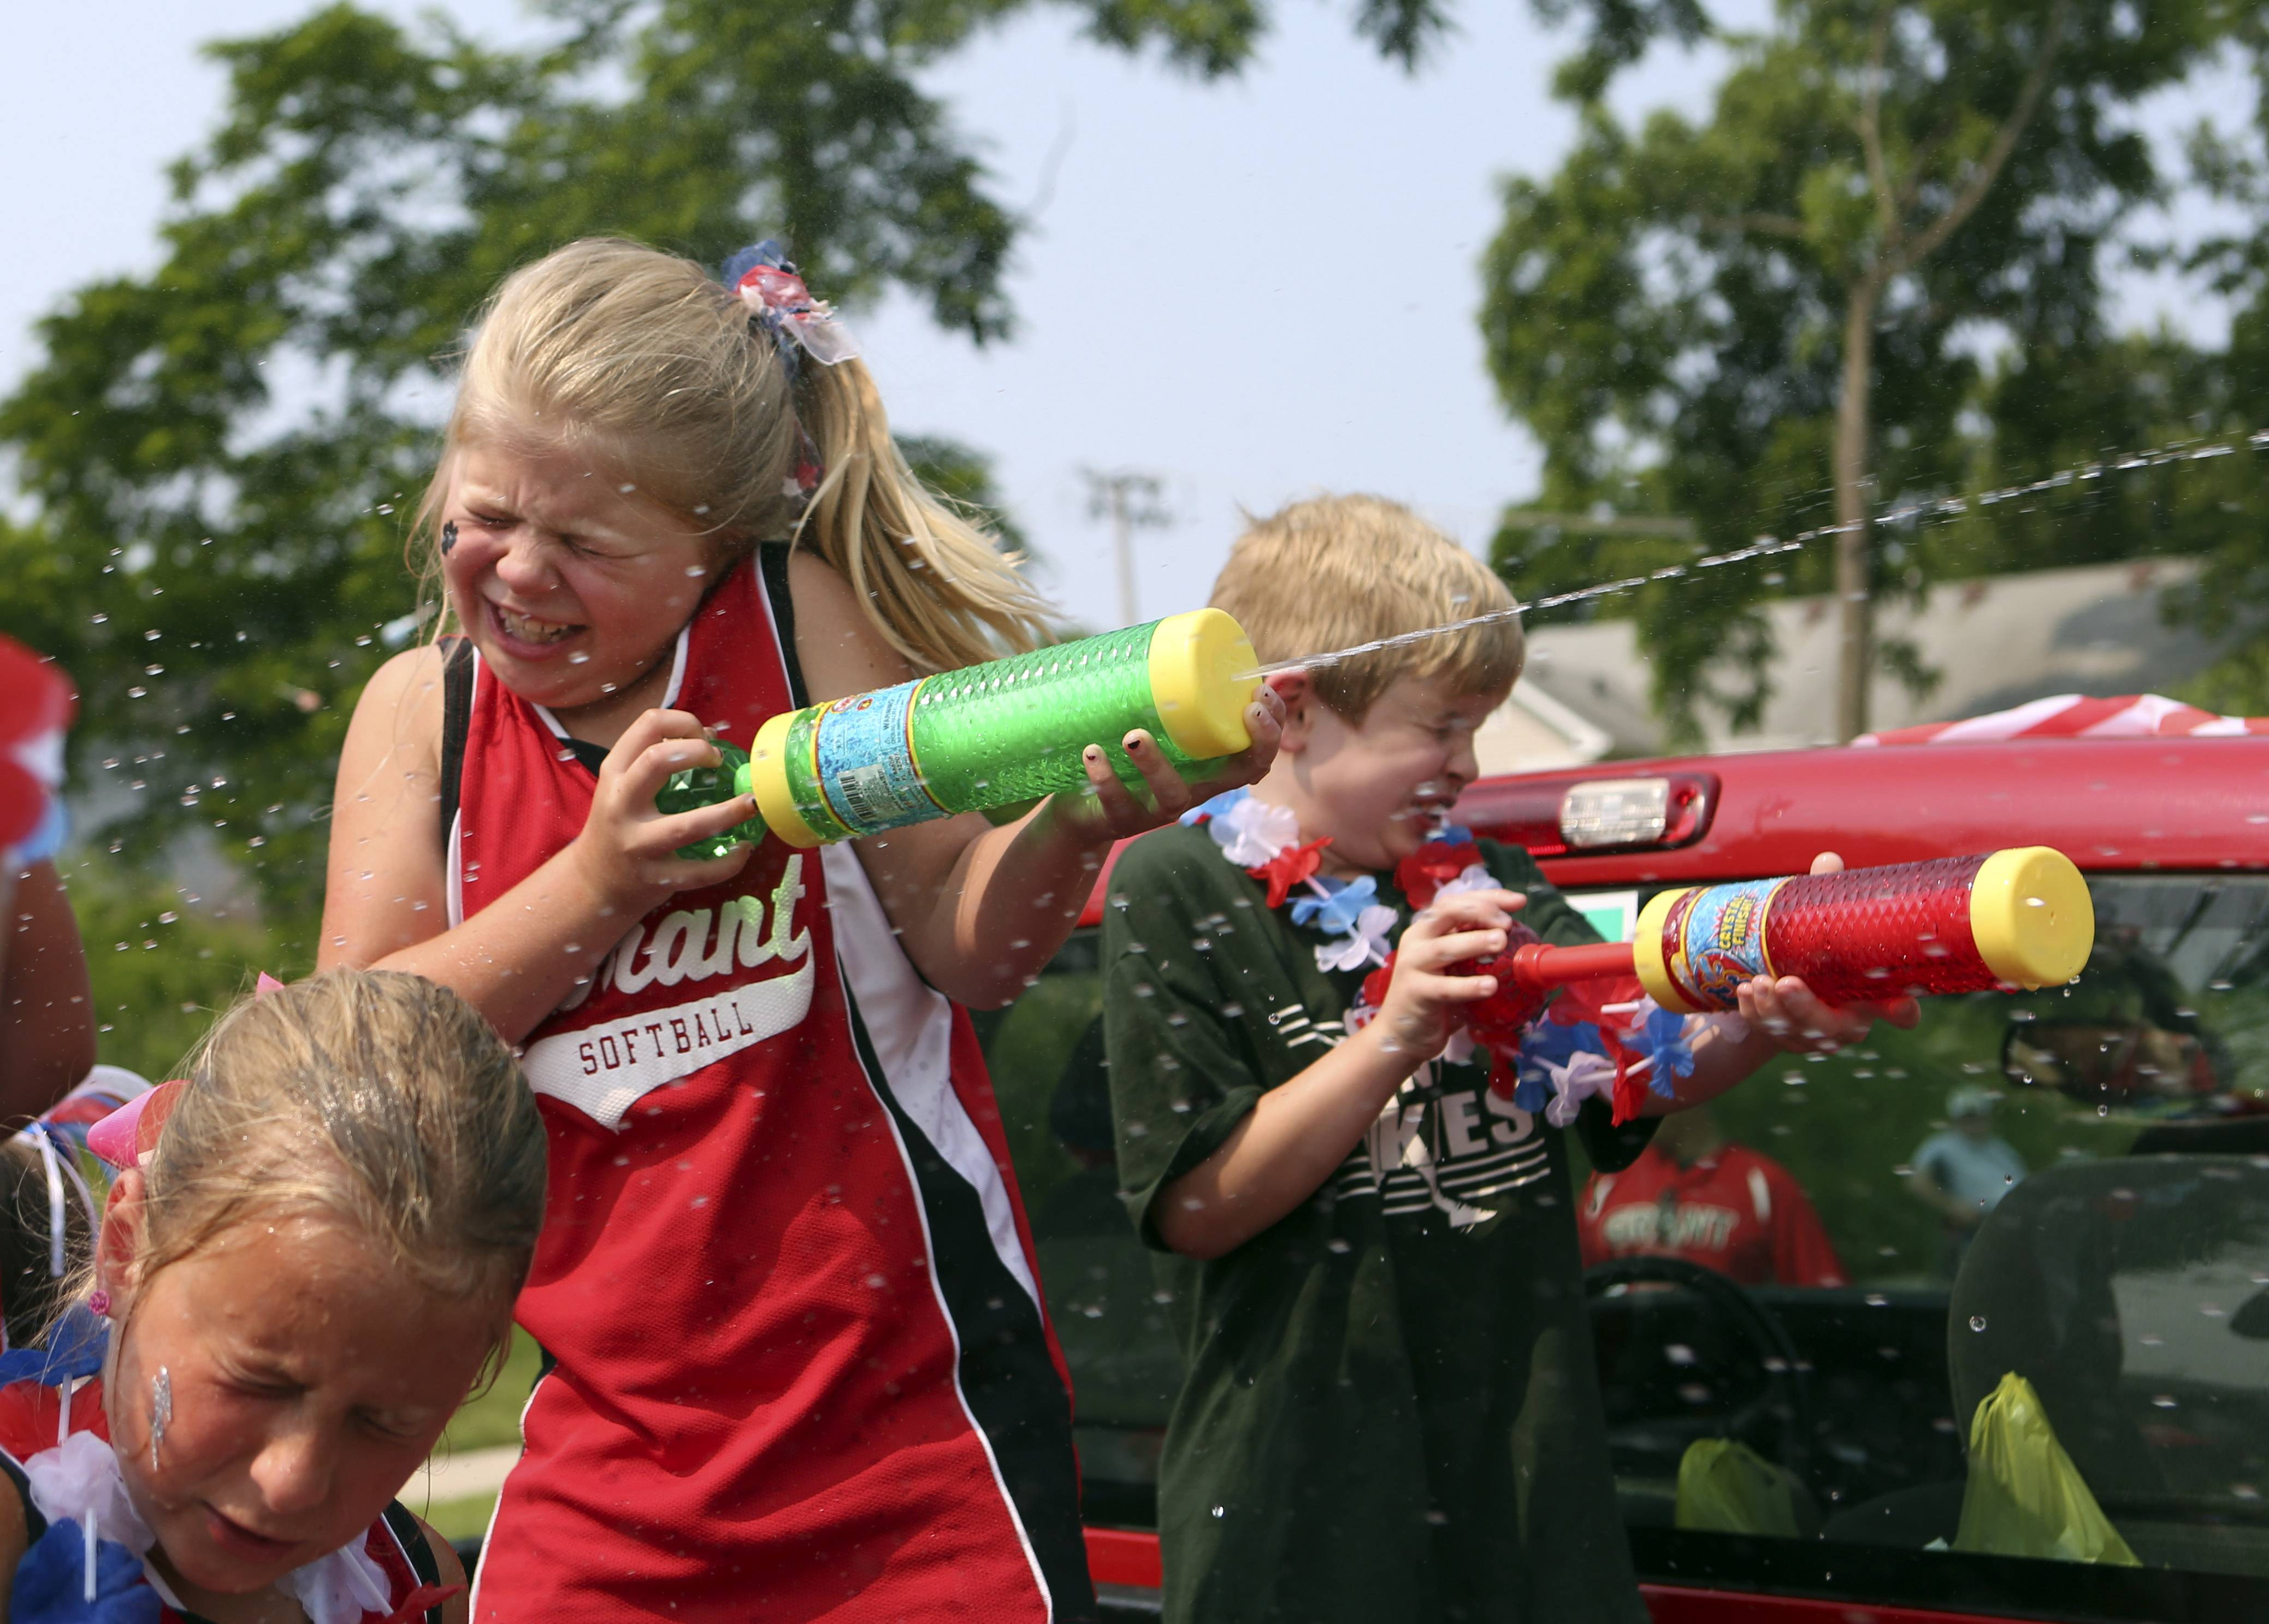 Gina-Marie Shearer, center, 8, of Fox Lake, shoots a water gun during the Celebrate Fox Lake Parade on Saturday. The parade started at Grant High School and ended at Towne Center Plaza.